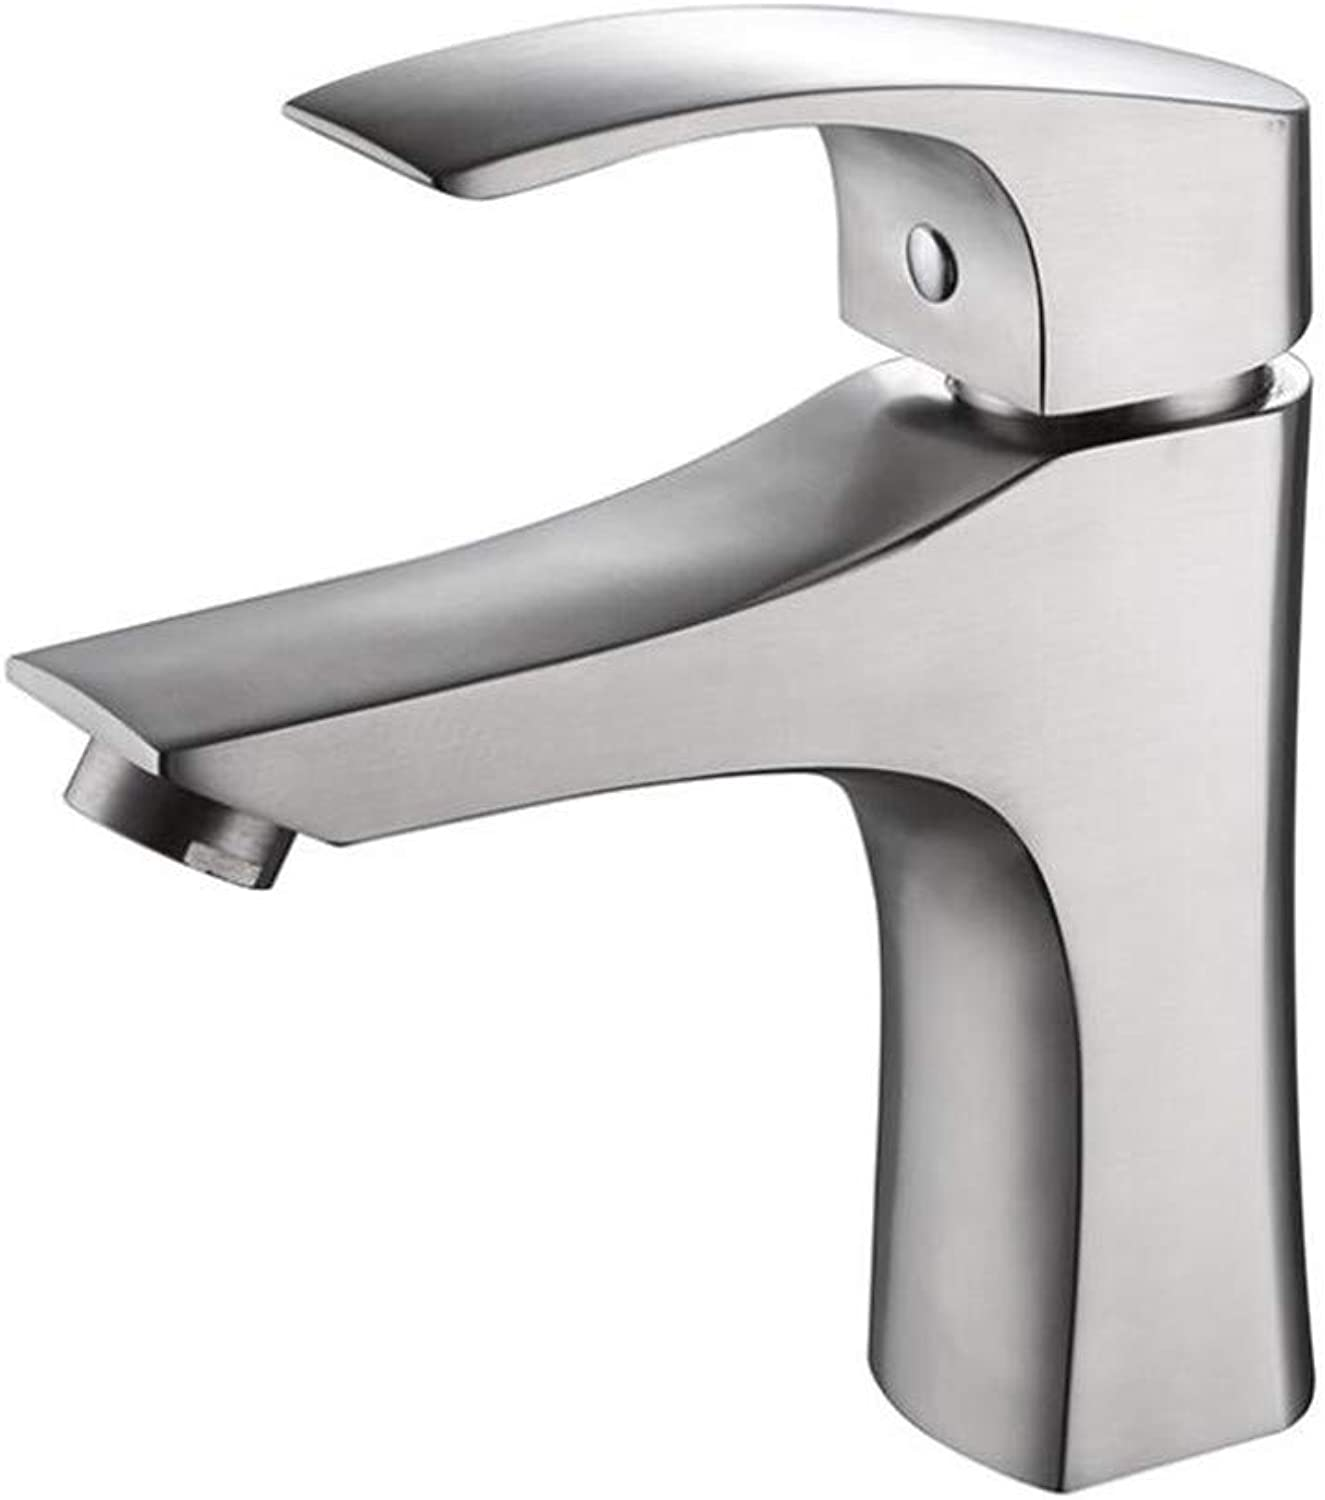 Bathroom Sink Basin Lever Mixer Tap 304 Stainless Steel Lead-Free Kitchen Faucet Cold and Hot Dishwasher Sink Faucet